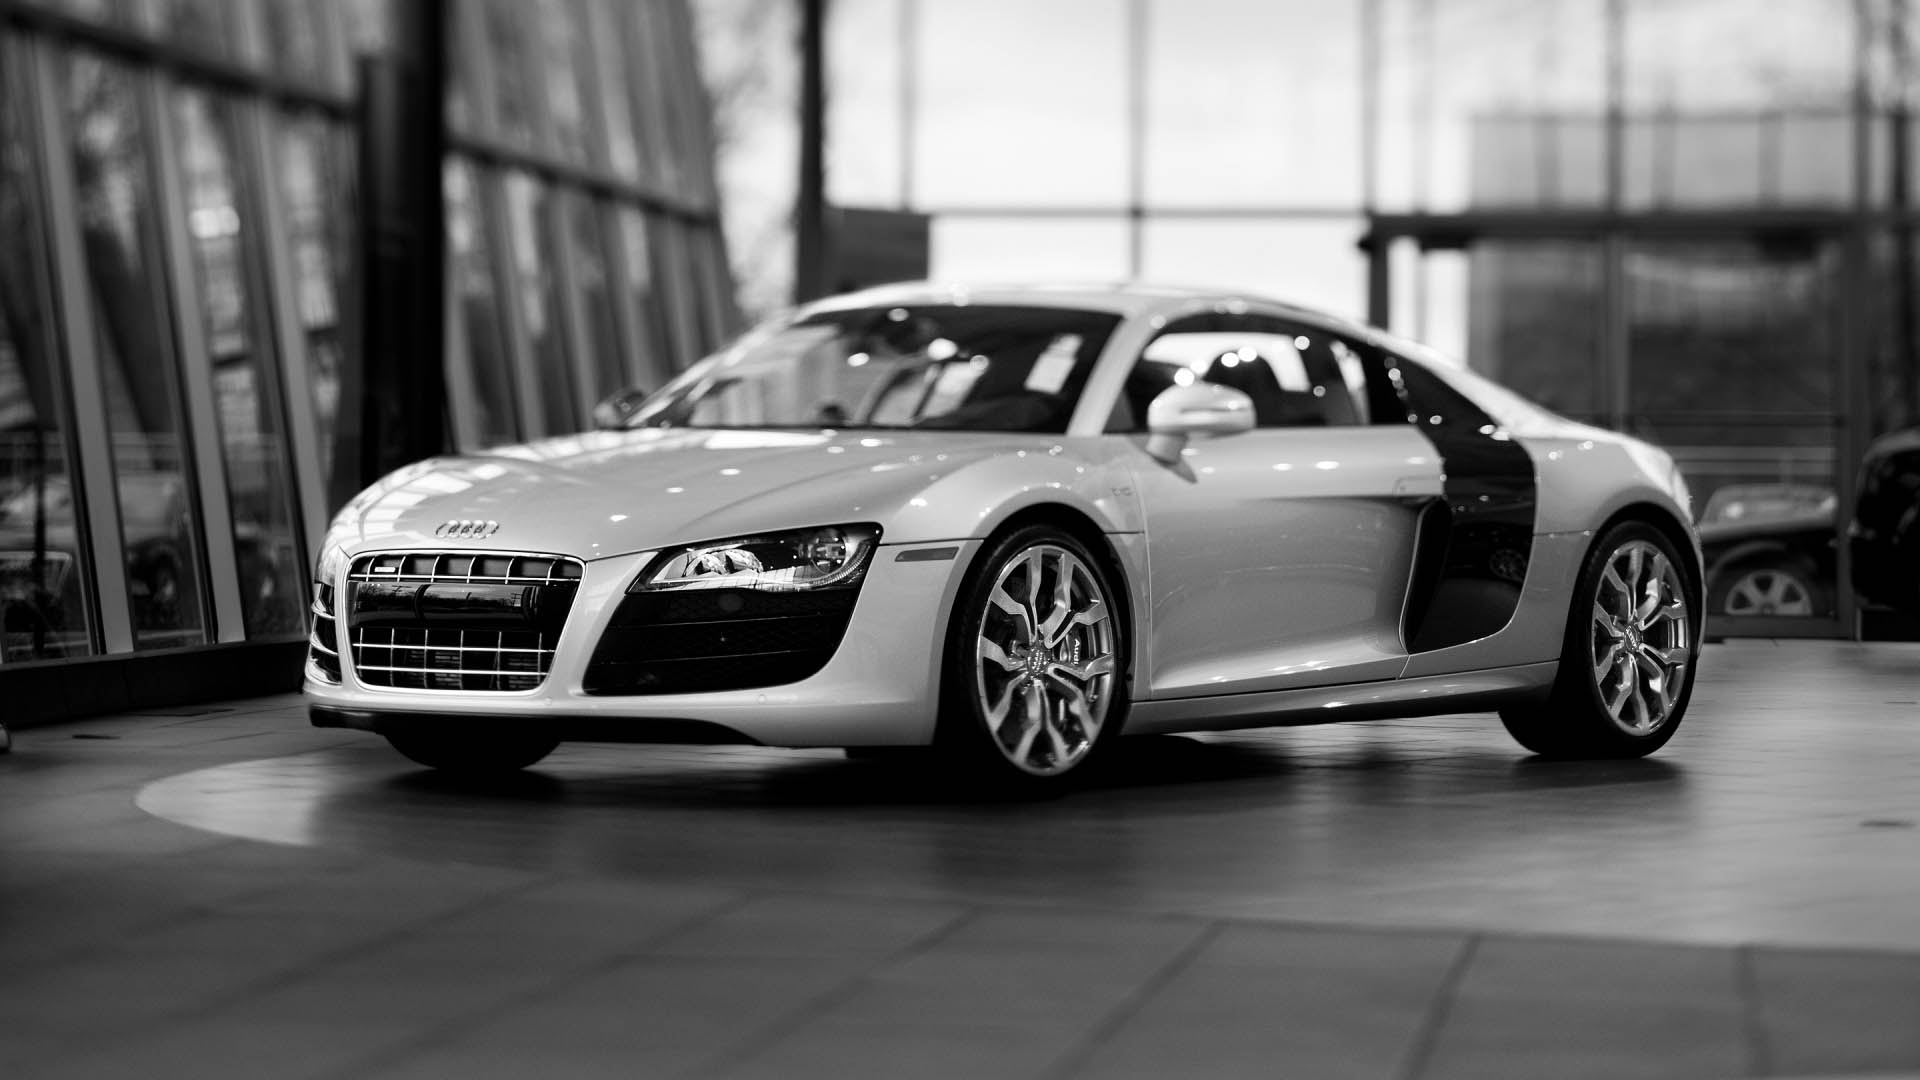 Audi R8 Hd Widescreen Wallpapers 1080p Audi R8 Wallpapers High Quality Download Free